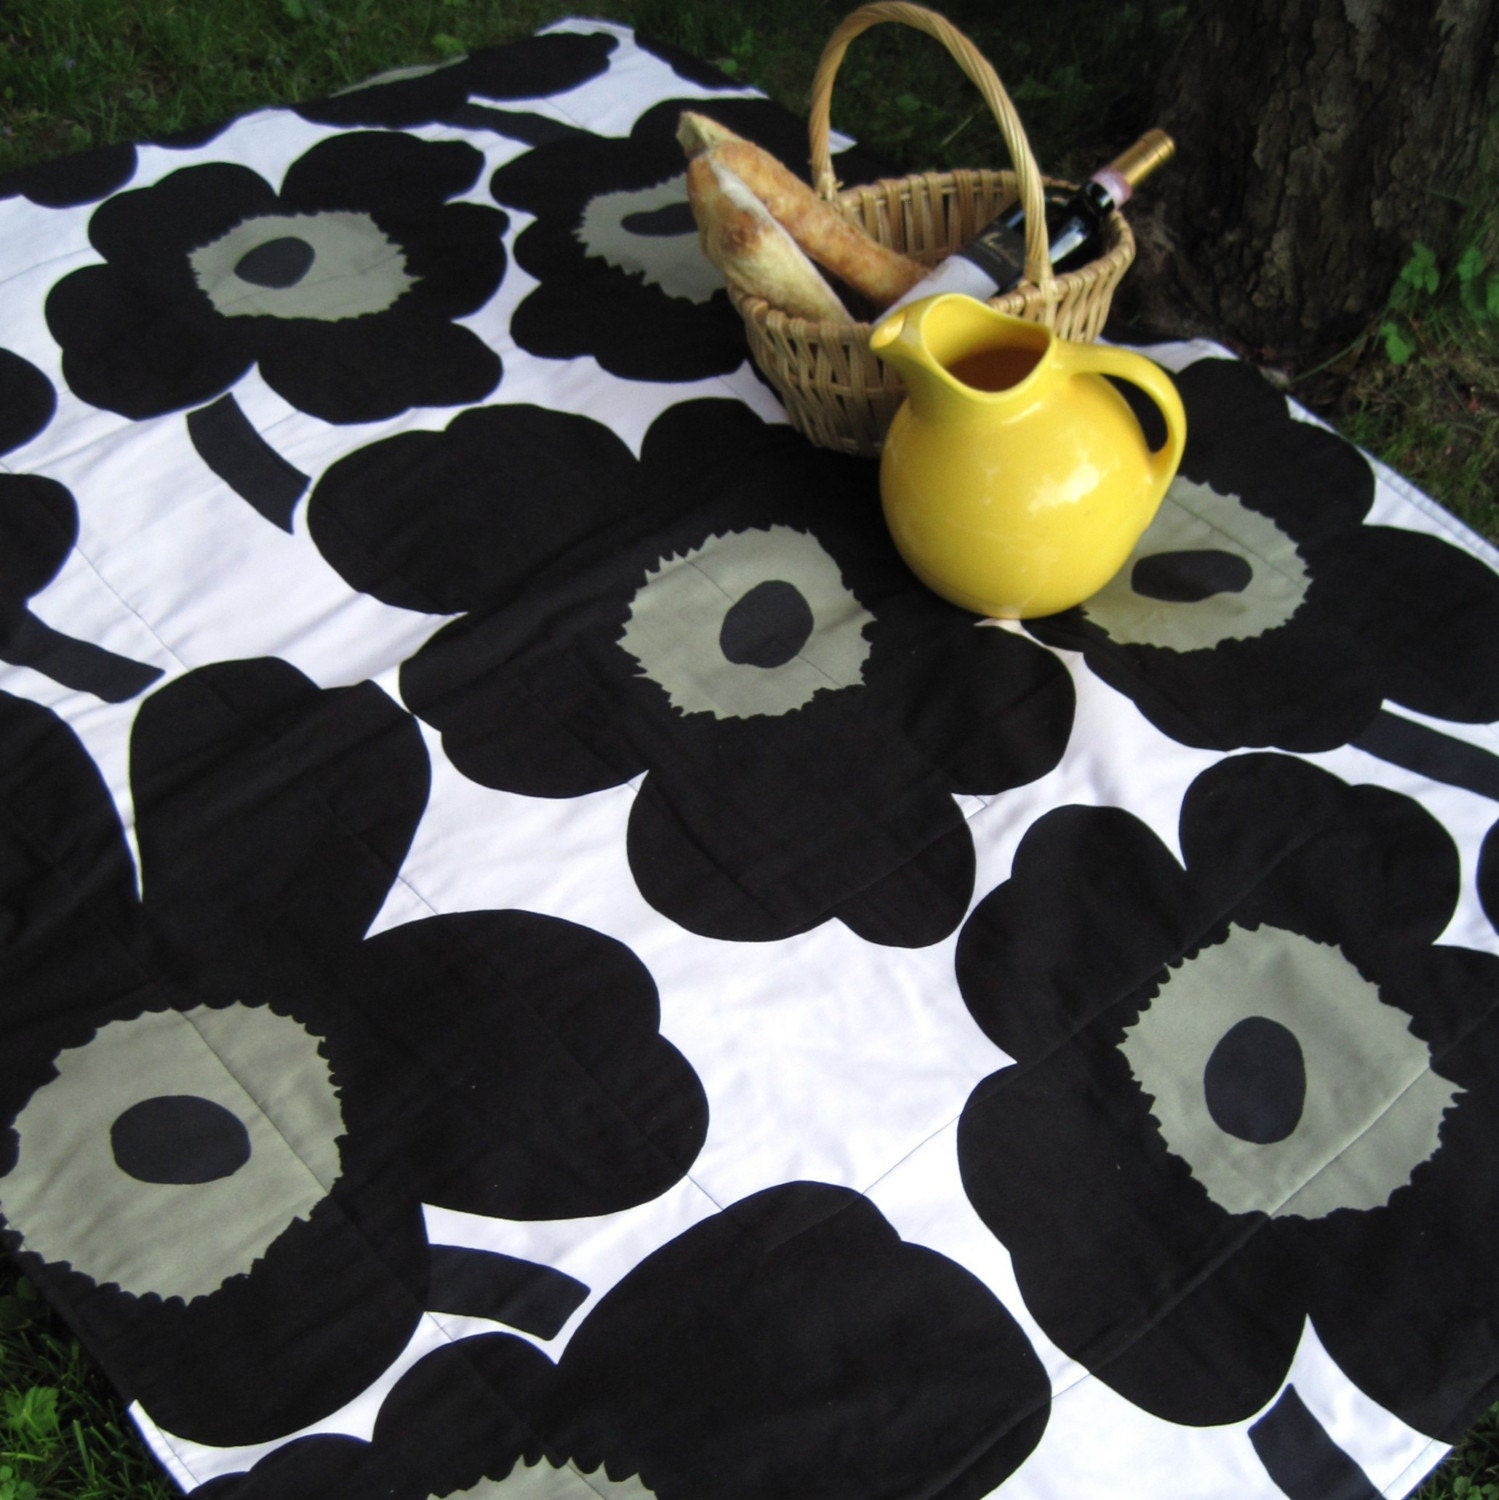 mod marimekko picnic blanket handmade / black white gray poppies (ONLY ONE)